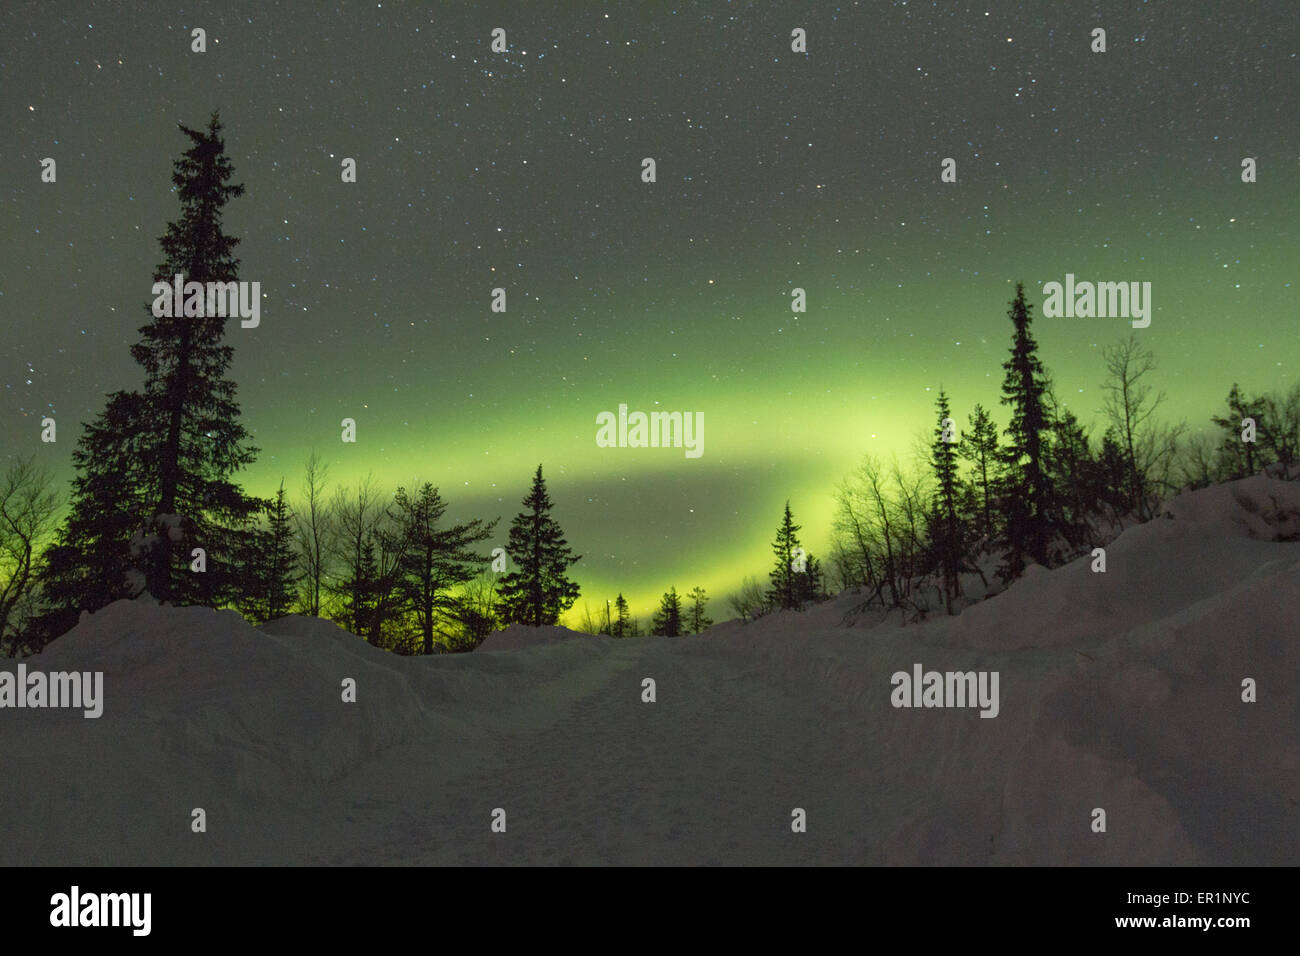 Aurora borealis, Northernlight over winter forestroad in Gällivare in Swedish lapland - Stock Image